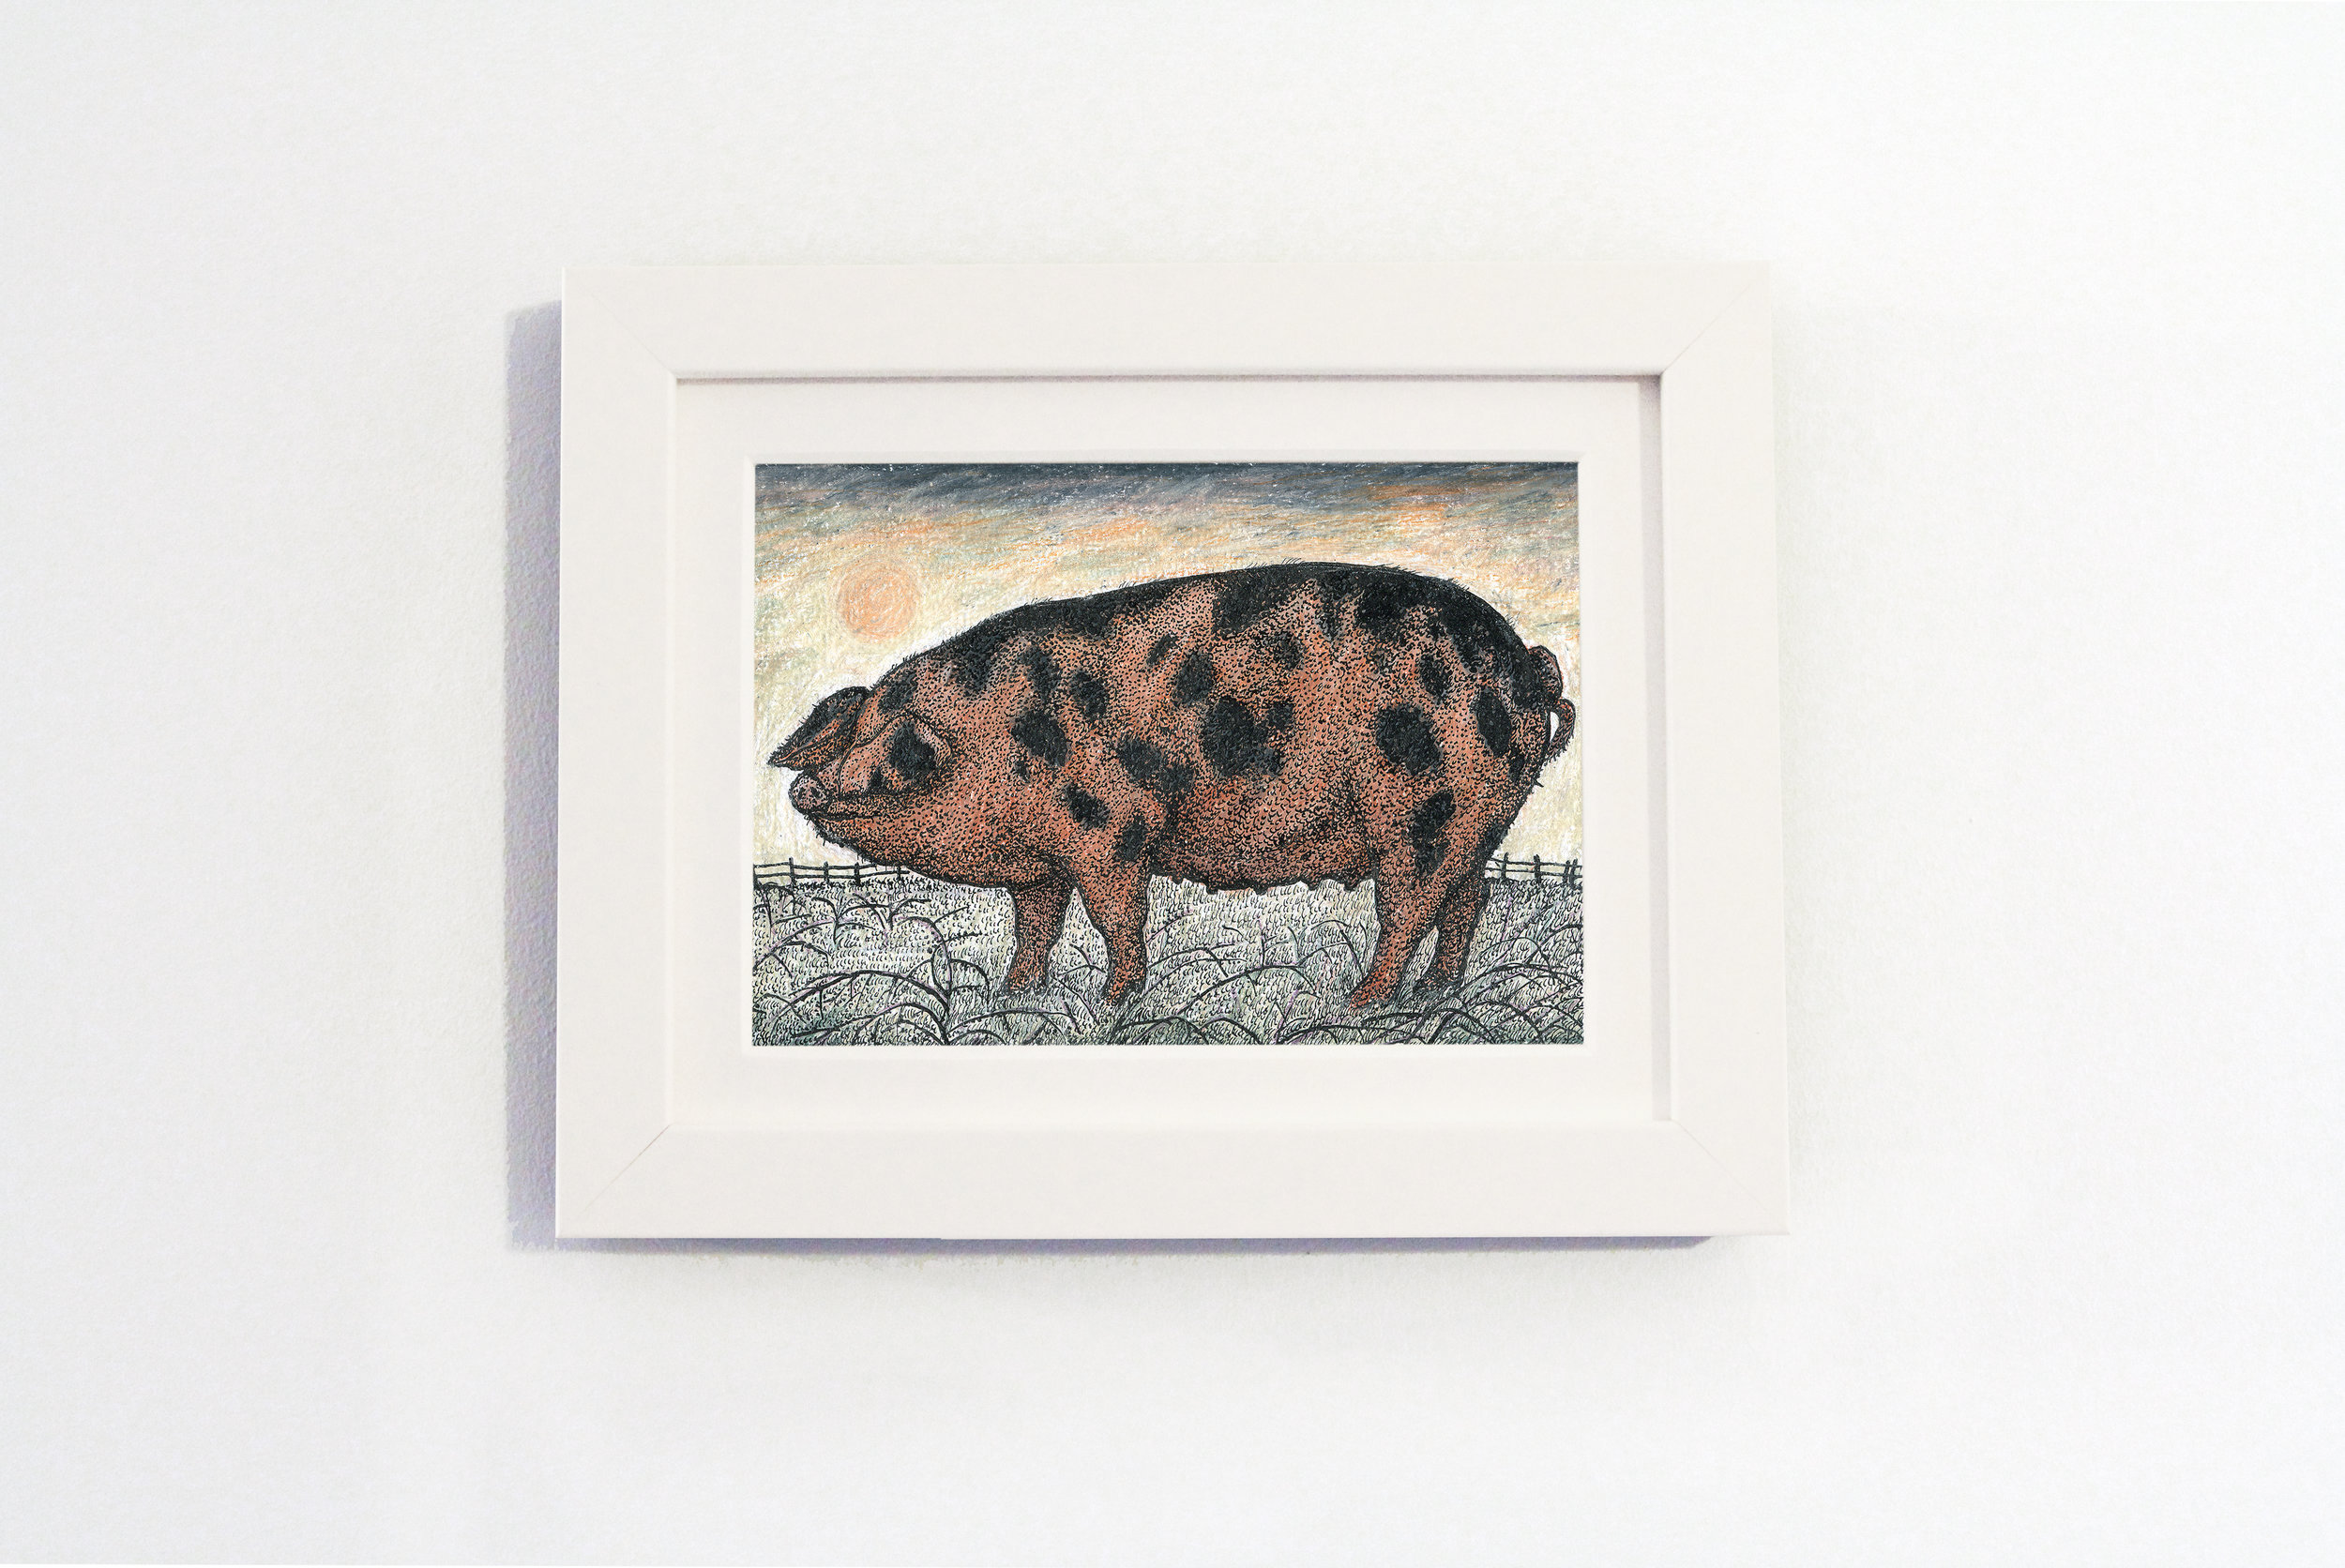 oxford sandy and black pig white frame.jpg